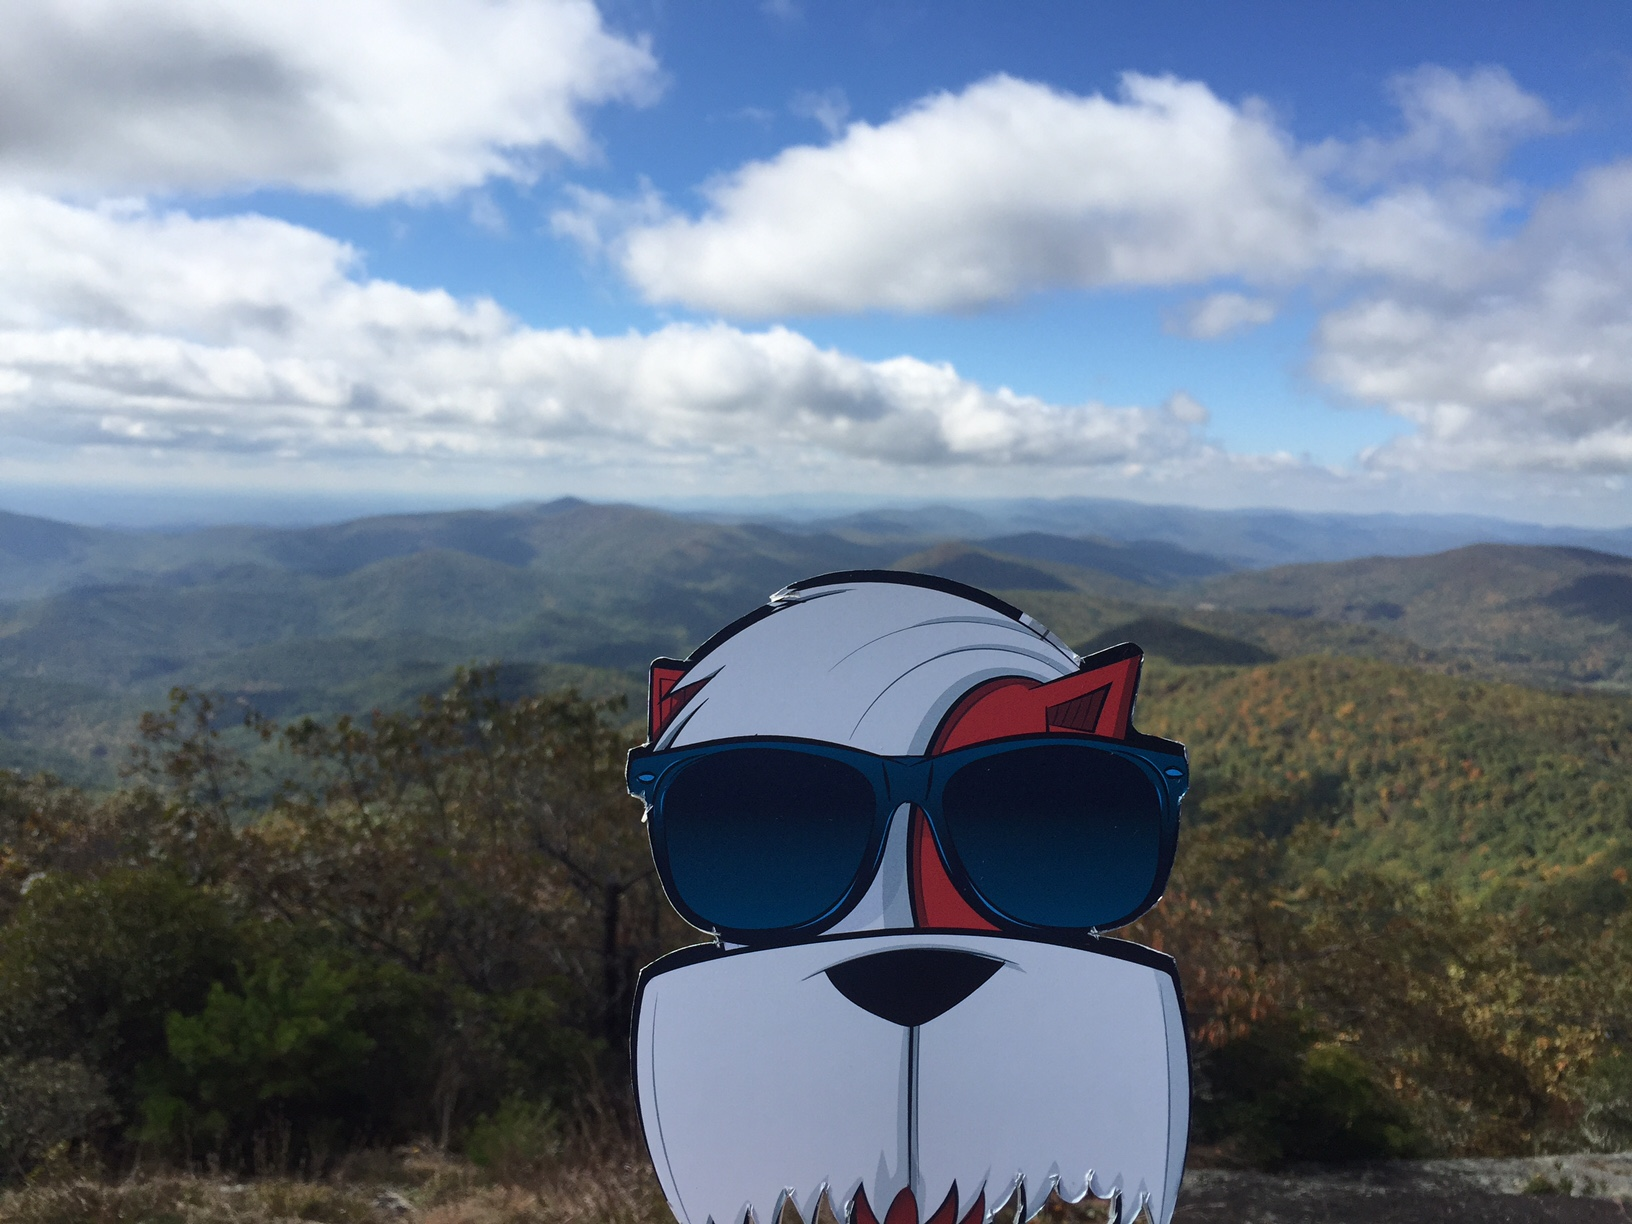 Image perceived to contain Glasses Goggles Life Buoy  on the Moppy and I Tackle an Appalachian Journey—205,485 Steps at a Time - Marietta & Kennesaw GA page